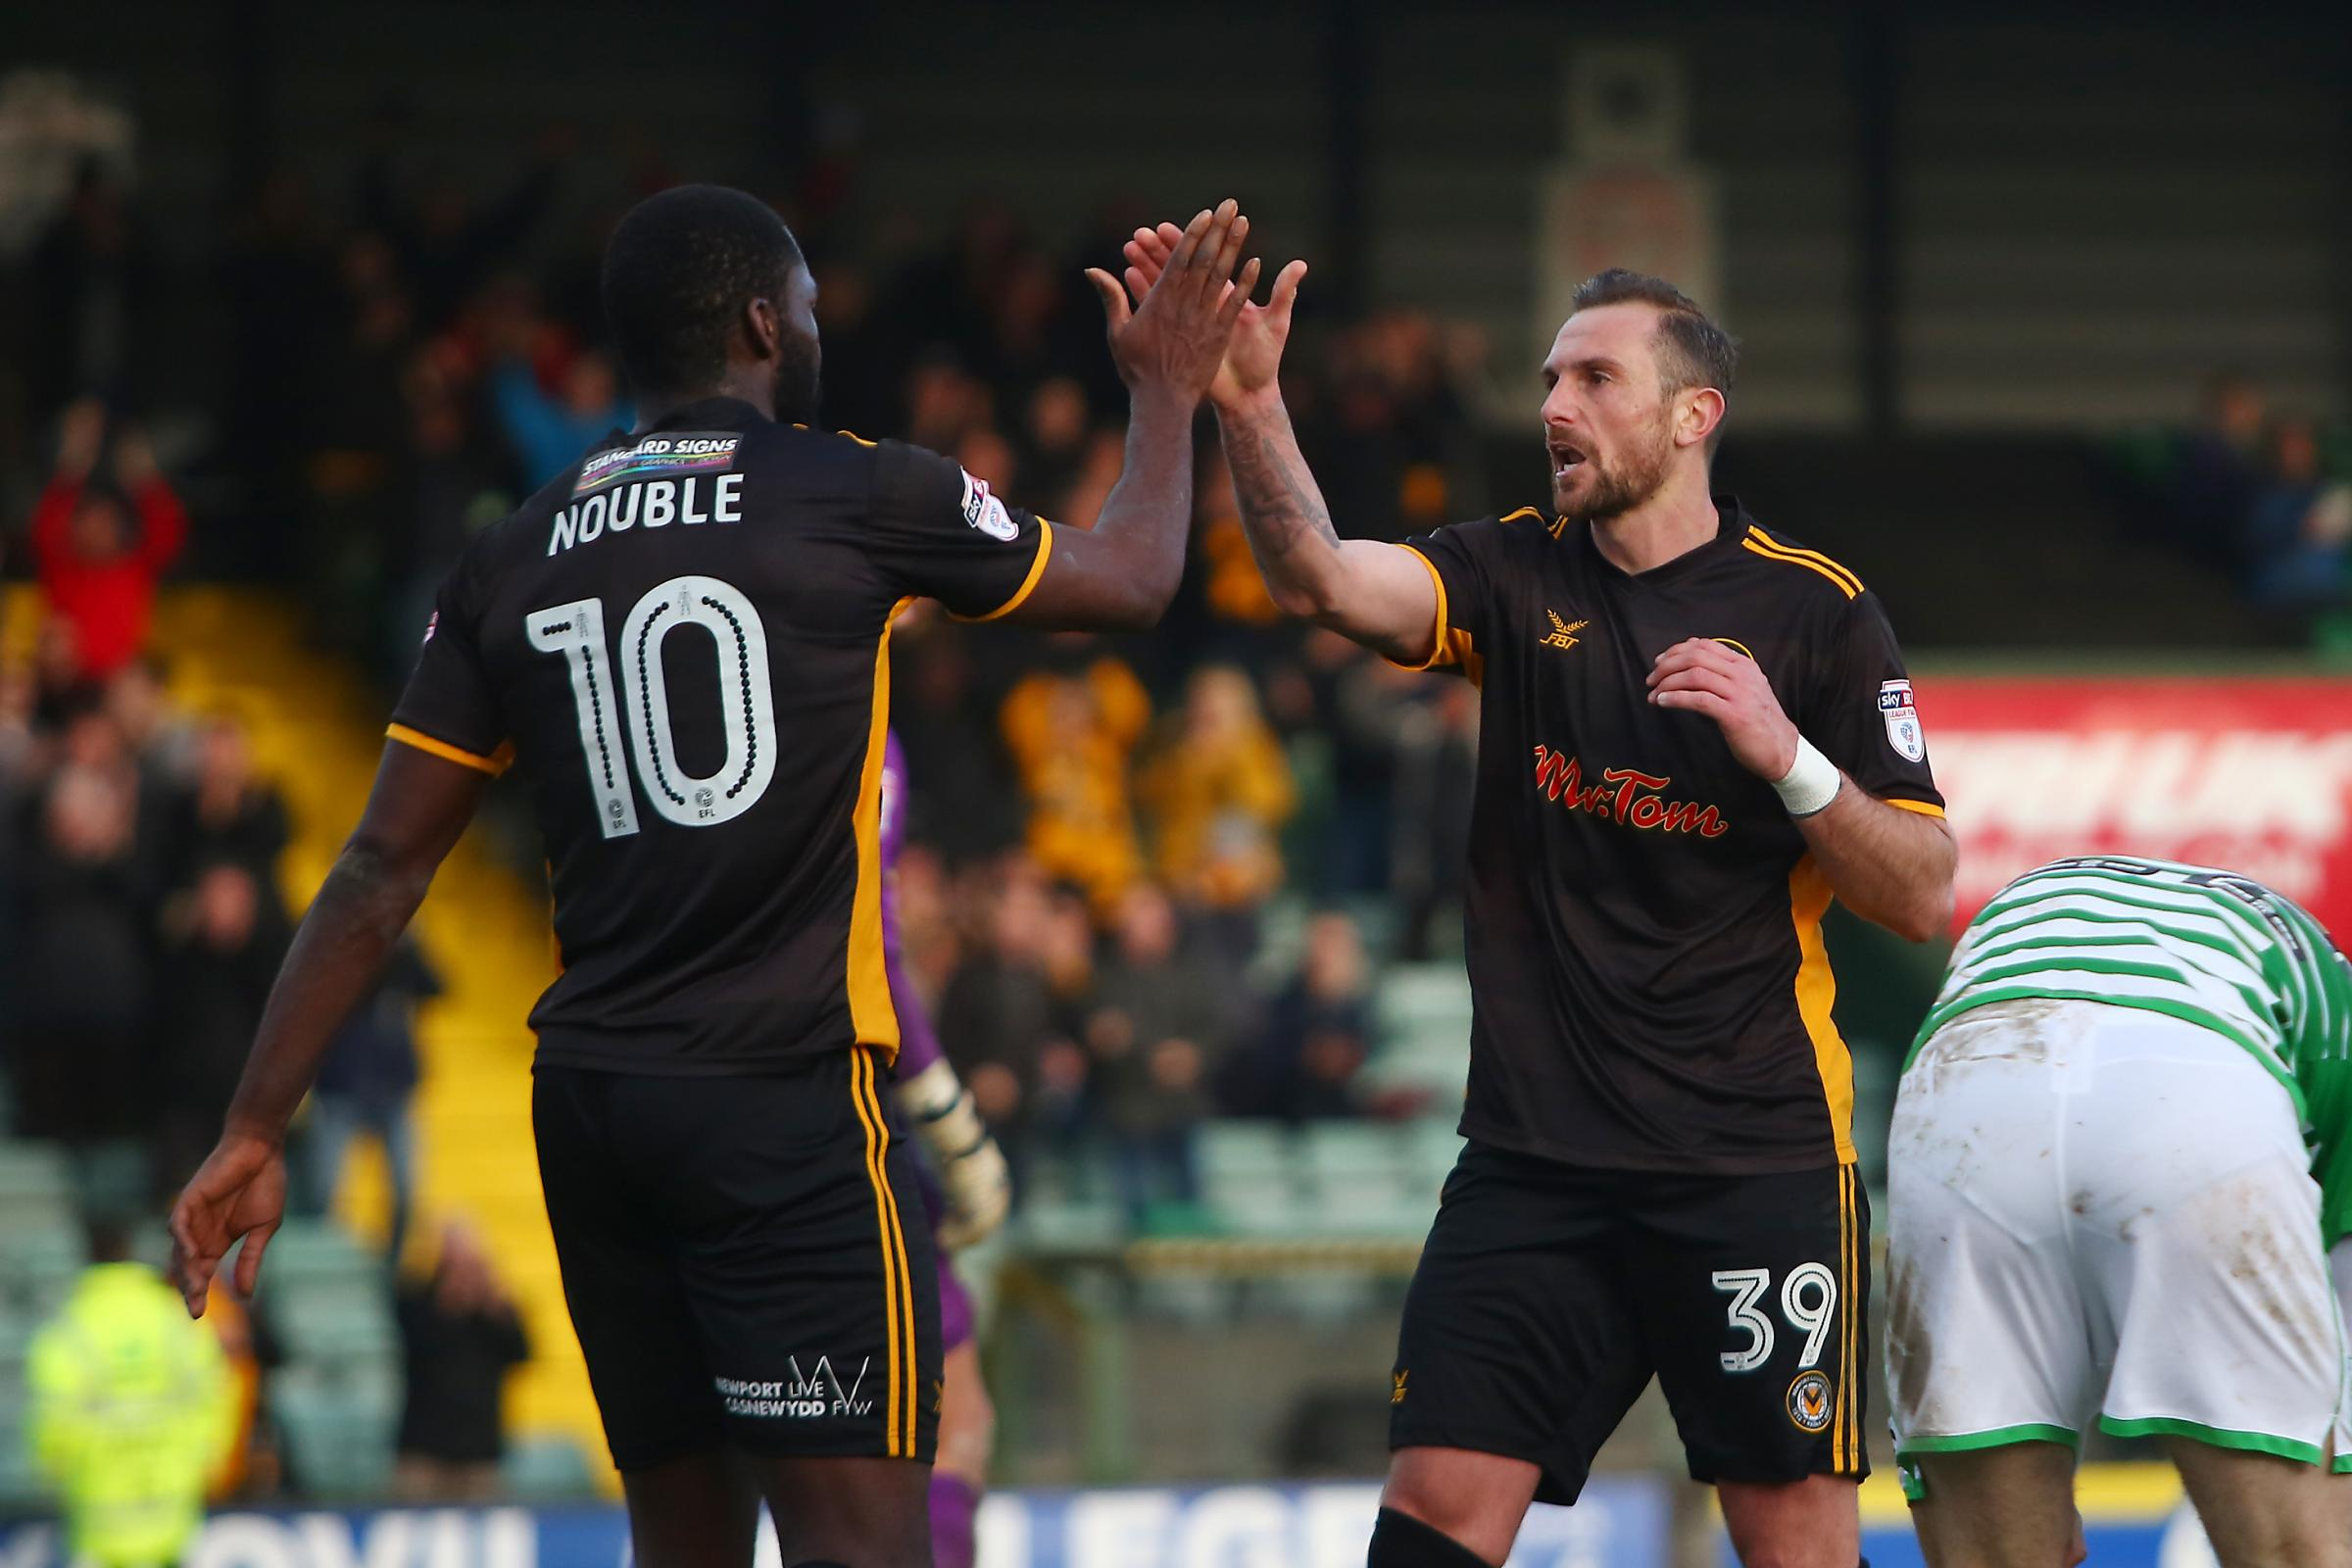 IN-FORM: Paul Hayes, right, celebrates his goal at Yeovil with Frank Nouble. Picture: Huw Evans Agency